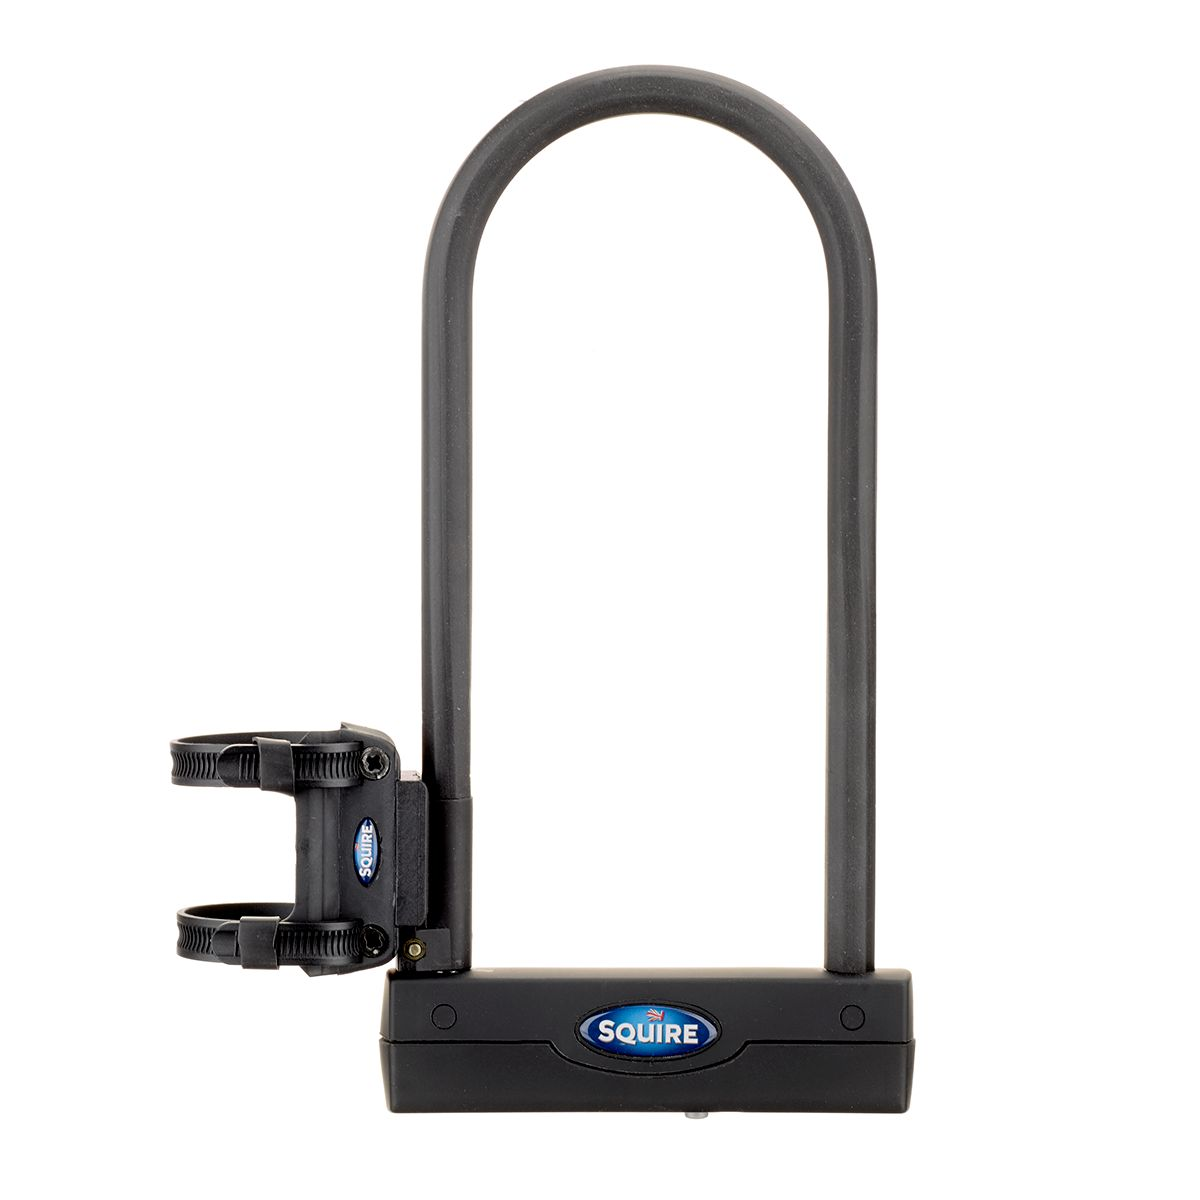 Squire Challenger 260 U-Lock with 8C Loop Cable | Løse låse